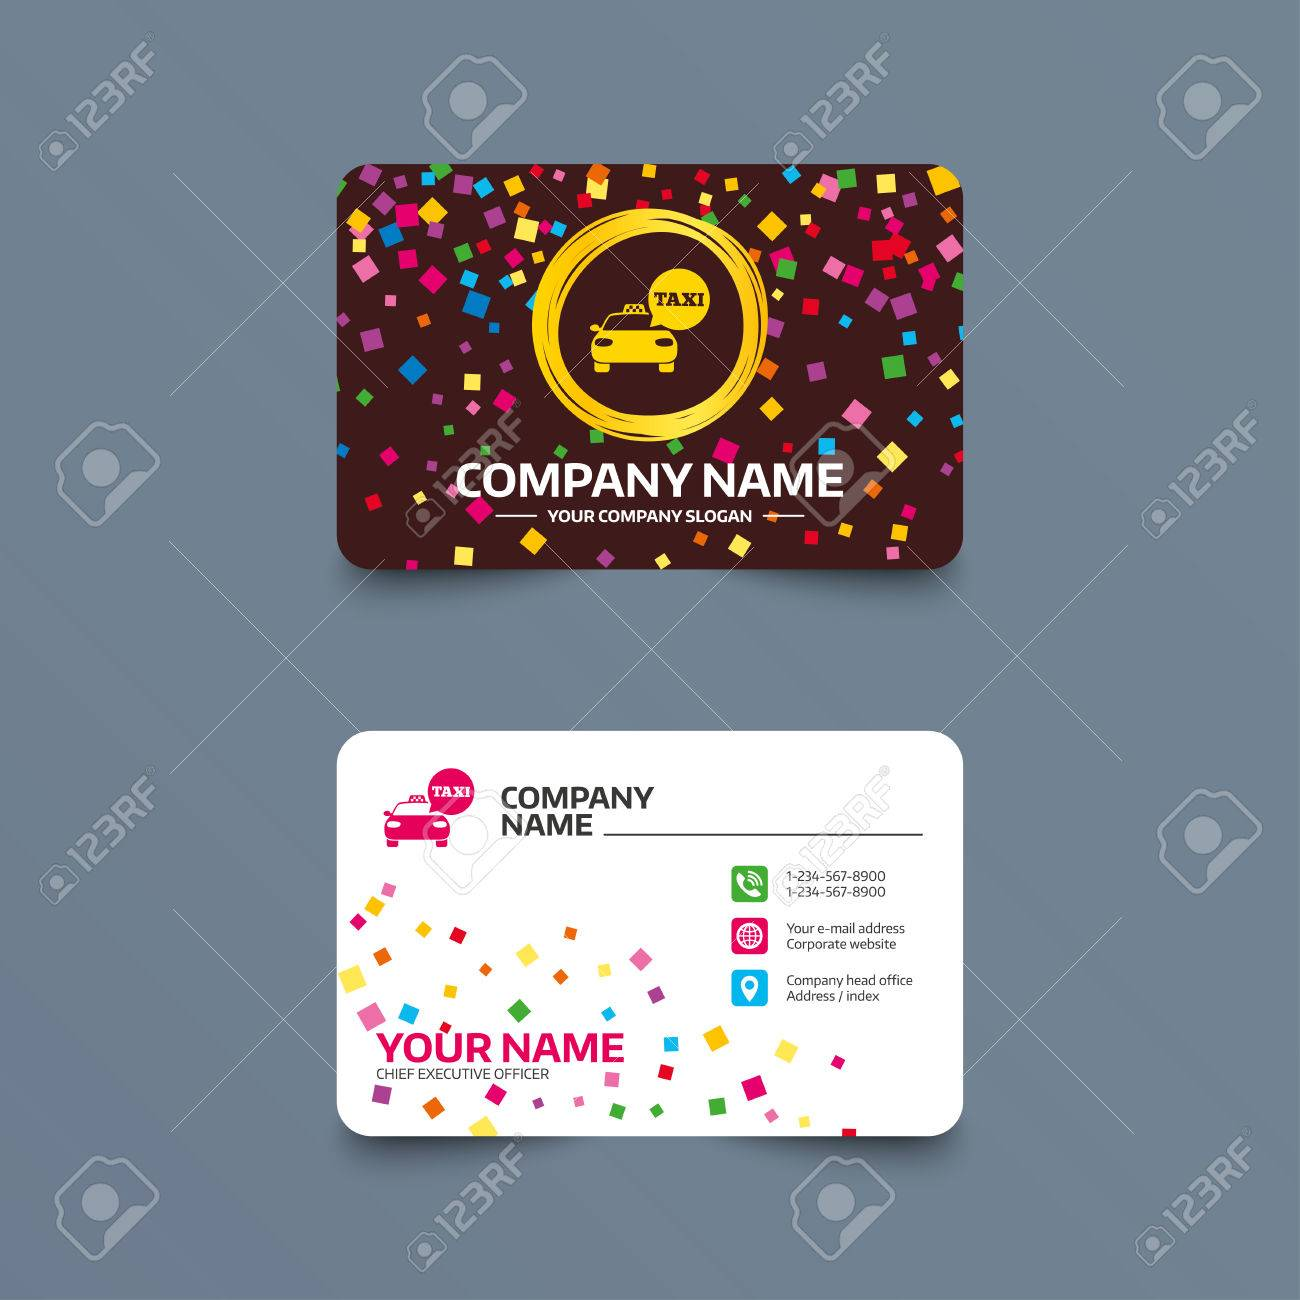 Business card template with confetti pieces taxi car sign icon business card template with confetti pieces taxi car sign icon public transport symbol reheart Gallery